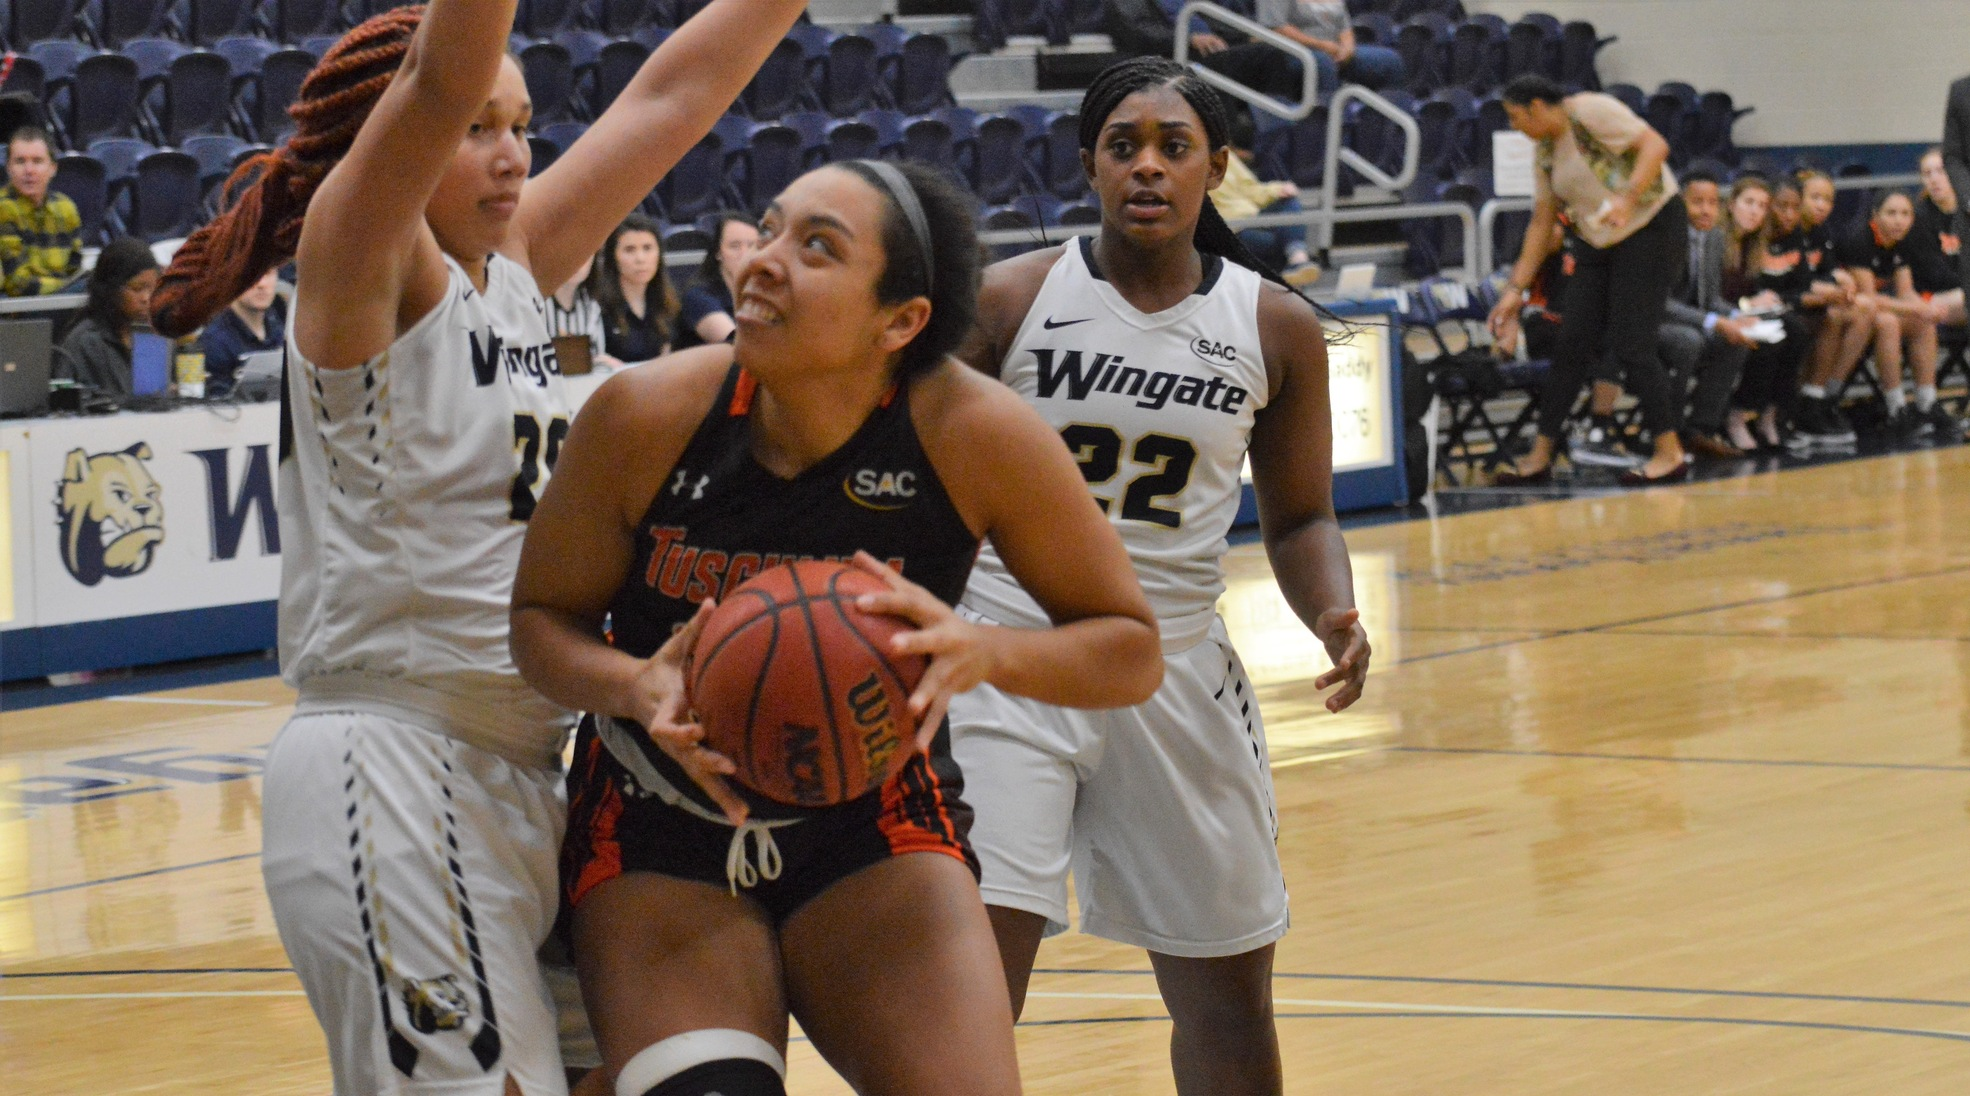 Fourth-quarter Pioneer rally falls short in 73-67 loss at Wingate